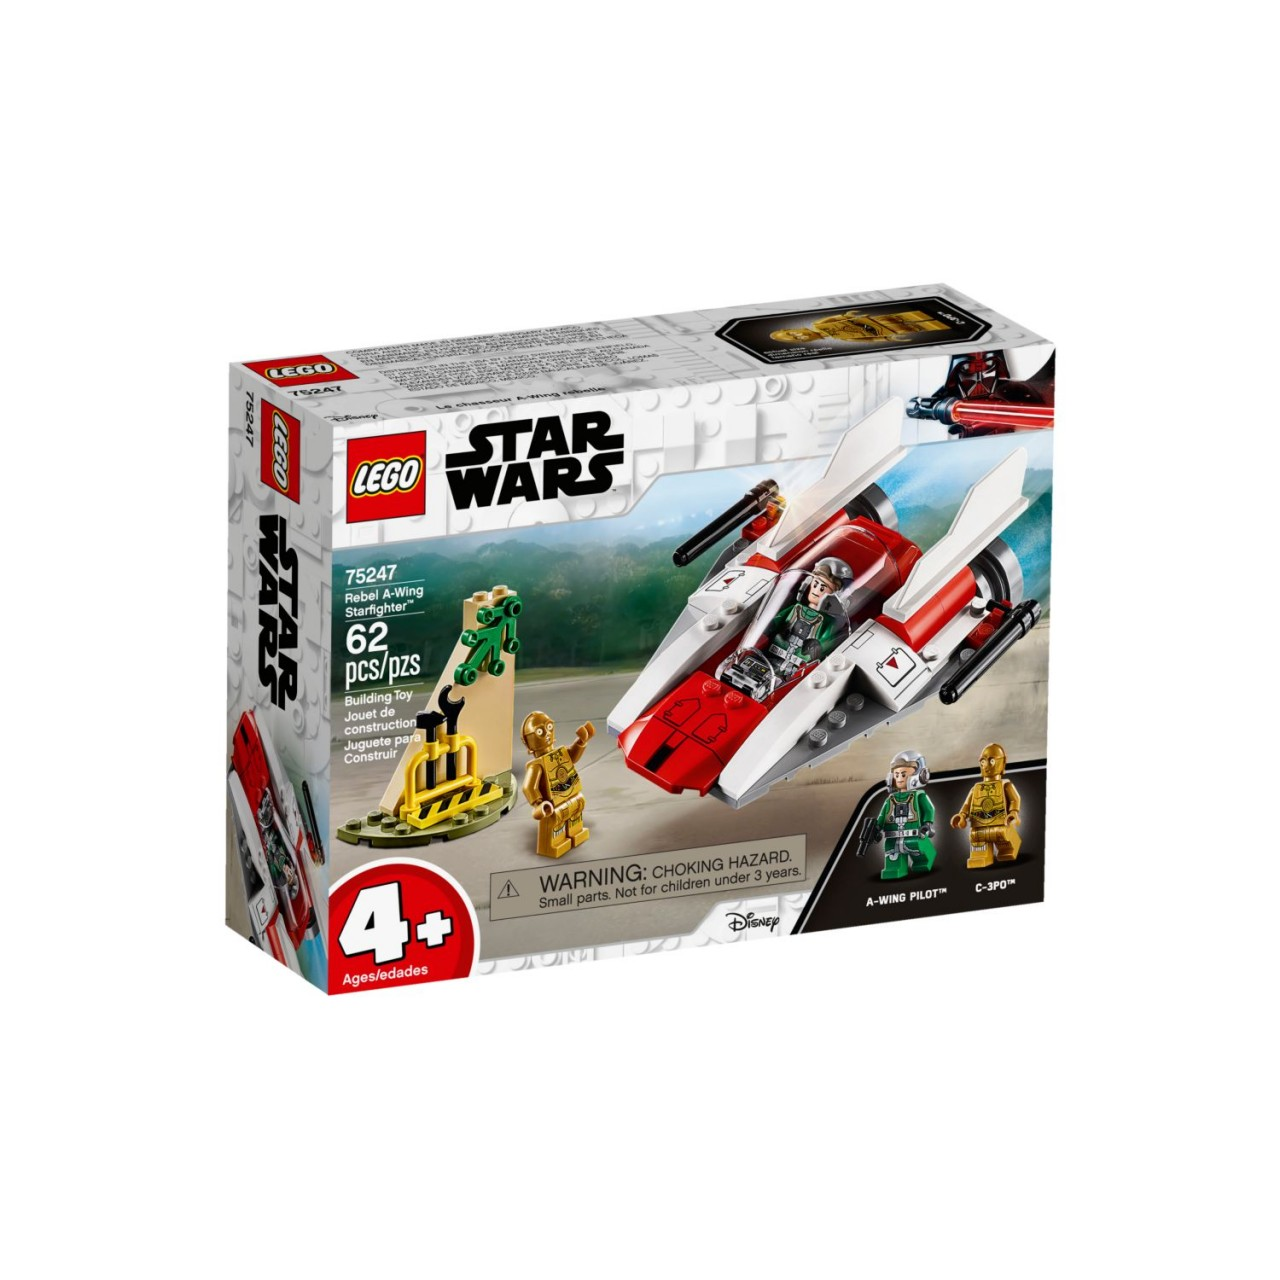 LEGO STAR WARS 75247 Rebel A-Wing Starfighter